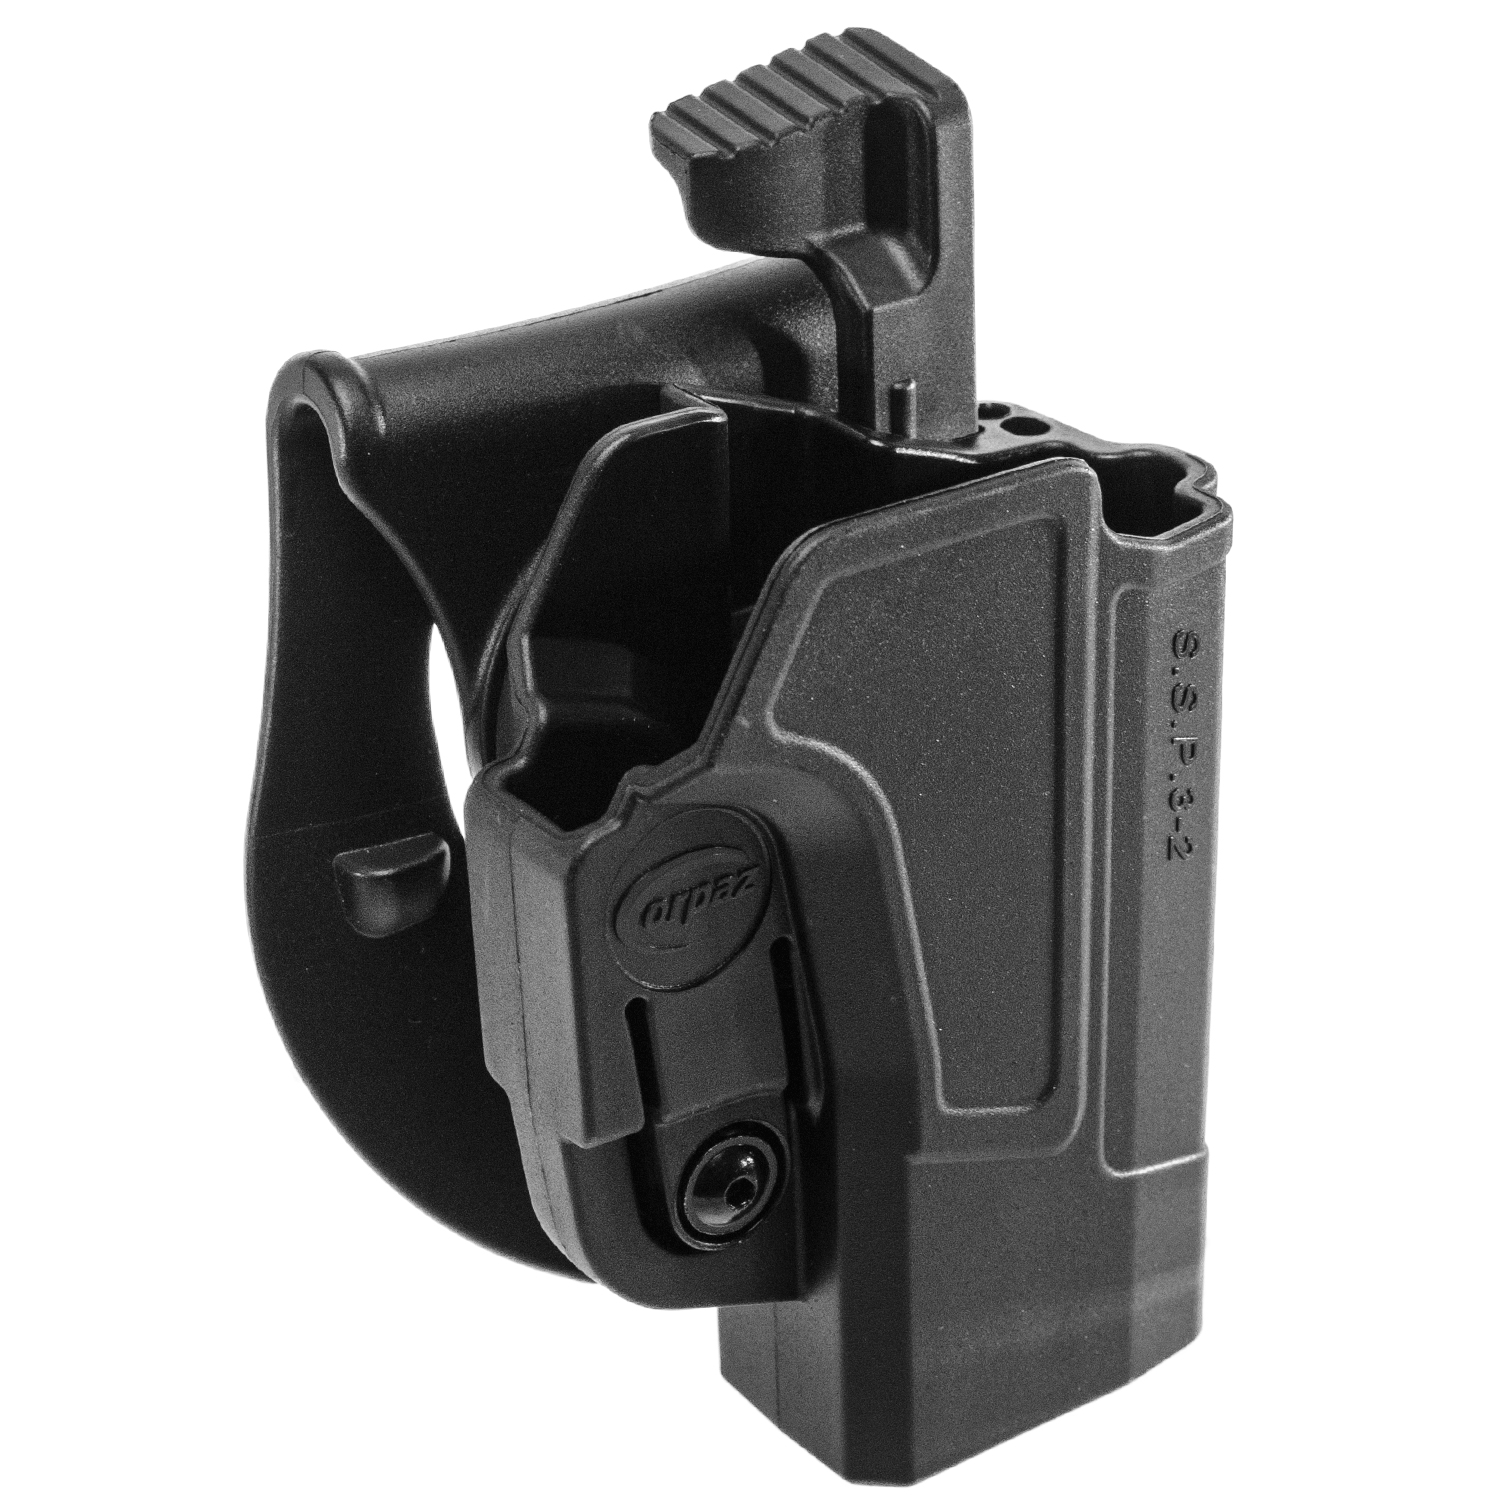 Orpaz Sig p320 Holster and Sig Sauer p250 Level 2 Thumb Release Paddle Holster